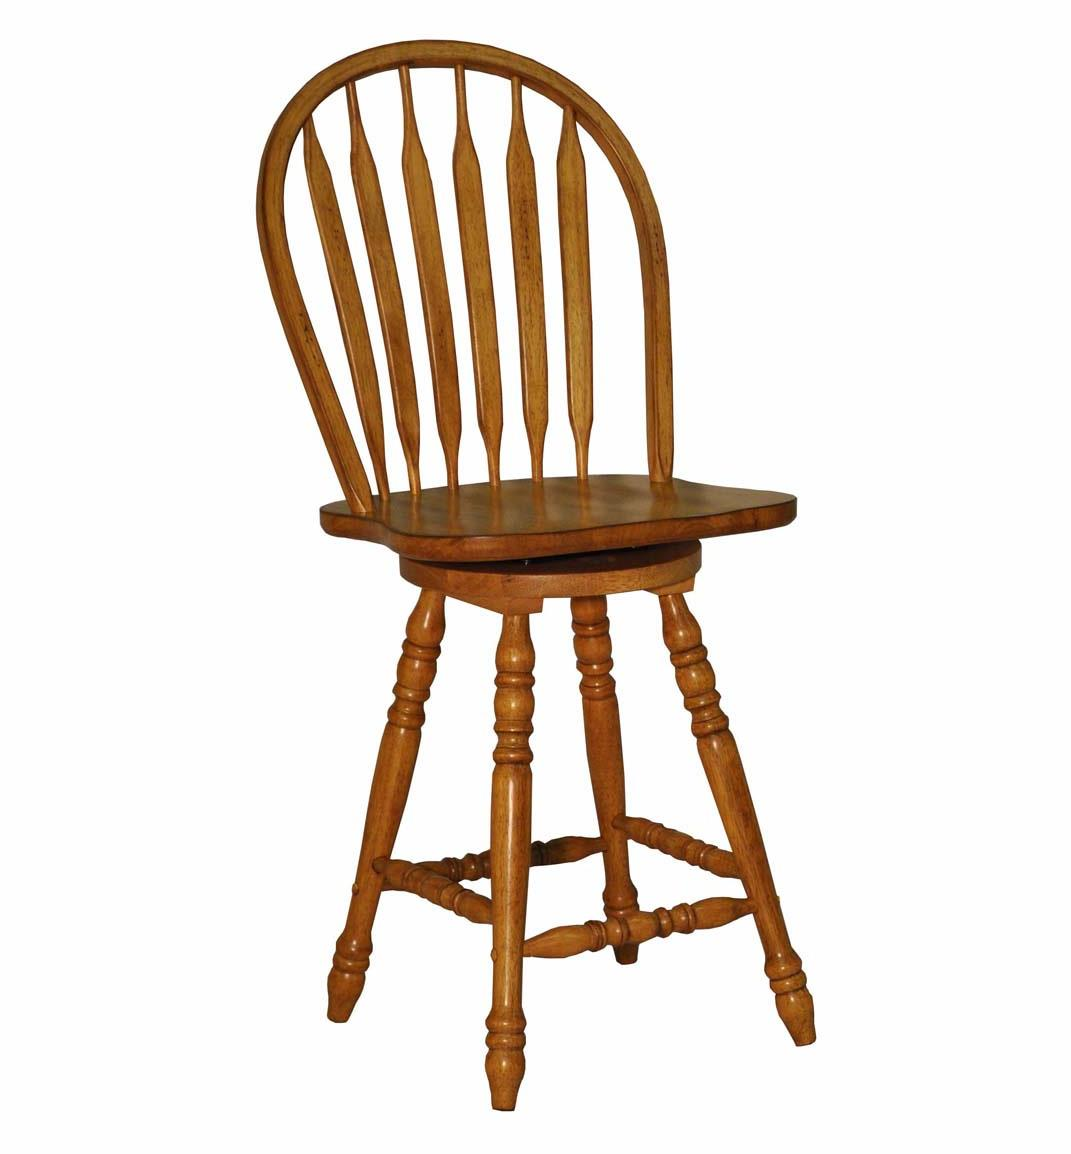 E.C.I. Furniture Dining  Large Bow Back Counter Stool - Rustic - Item Number: 2190-04-BS24